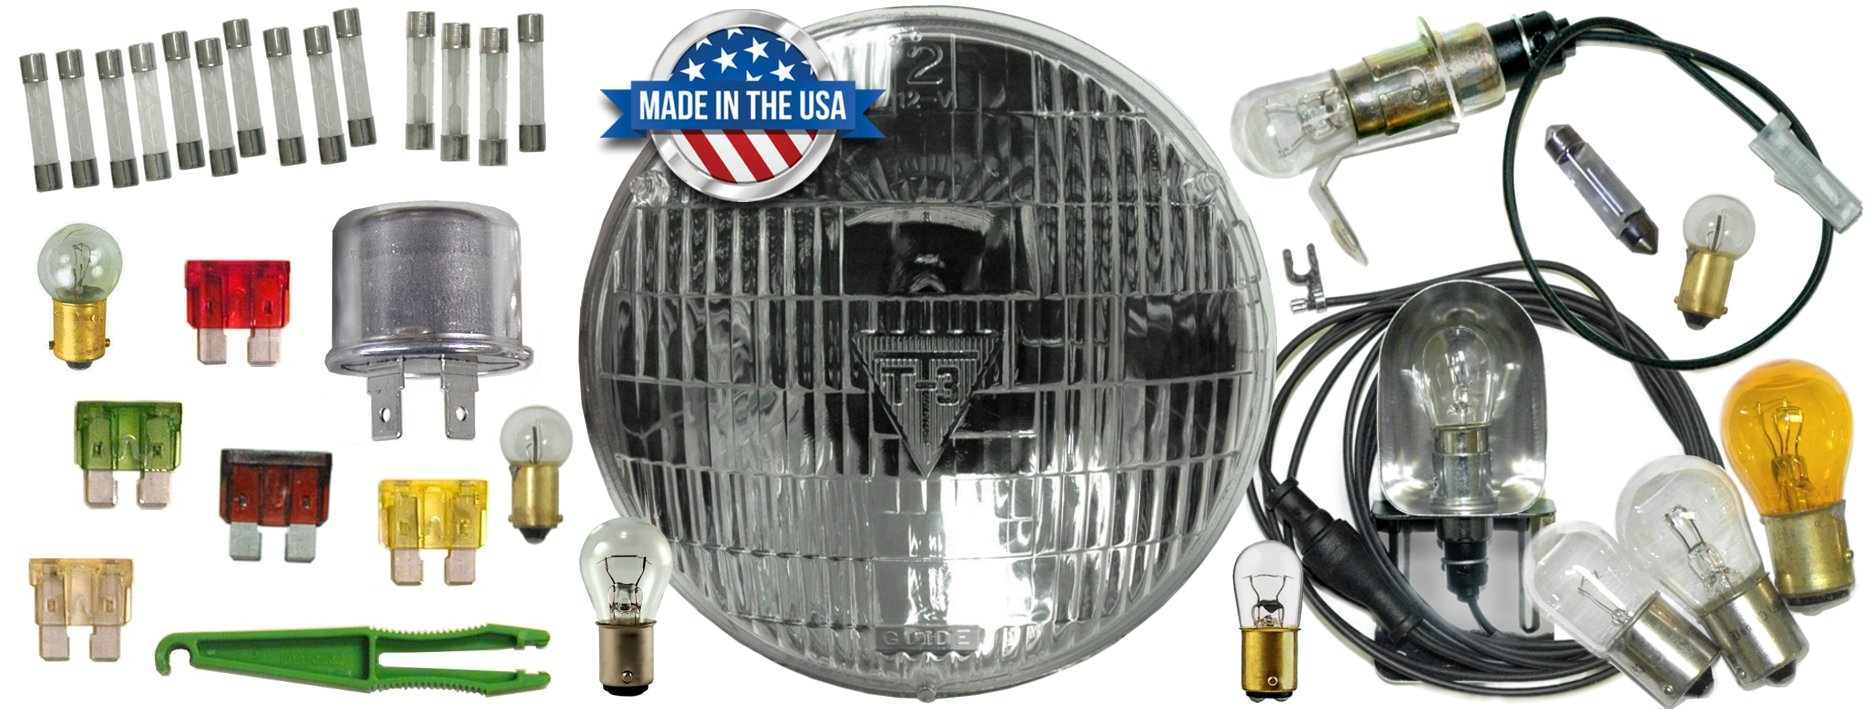 Classic Car Light Bulbs: Reproduction T-3® Headlight Bulbs, Bulb Kits & Fuse/Flasher Sets for Classic  & Muscle Cars,Lighting